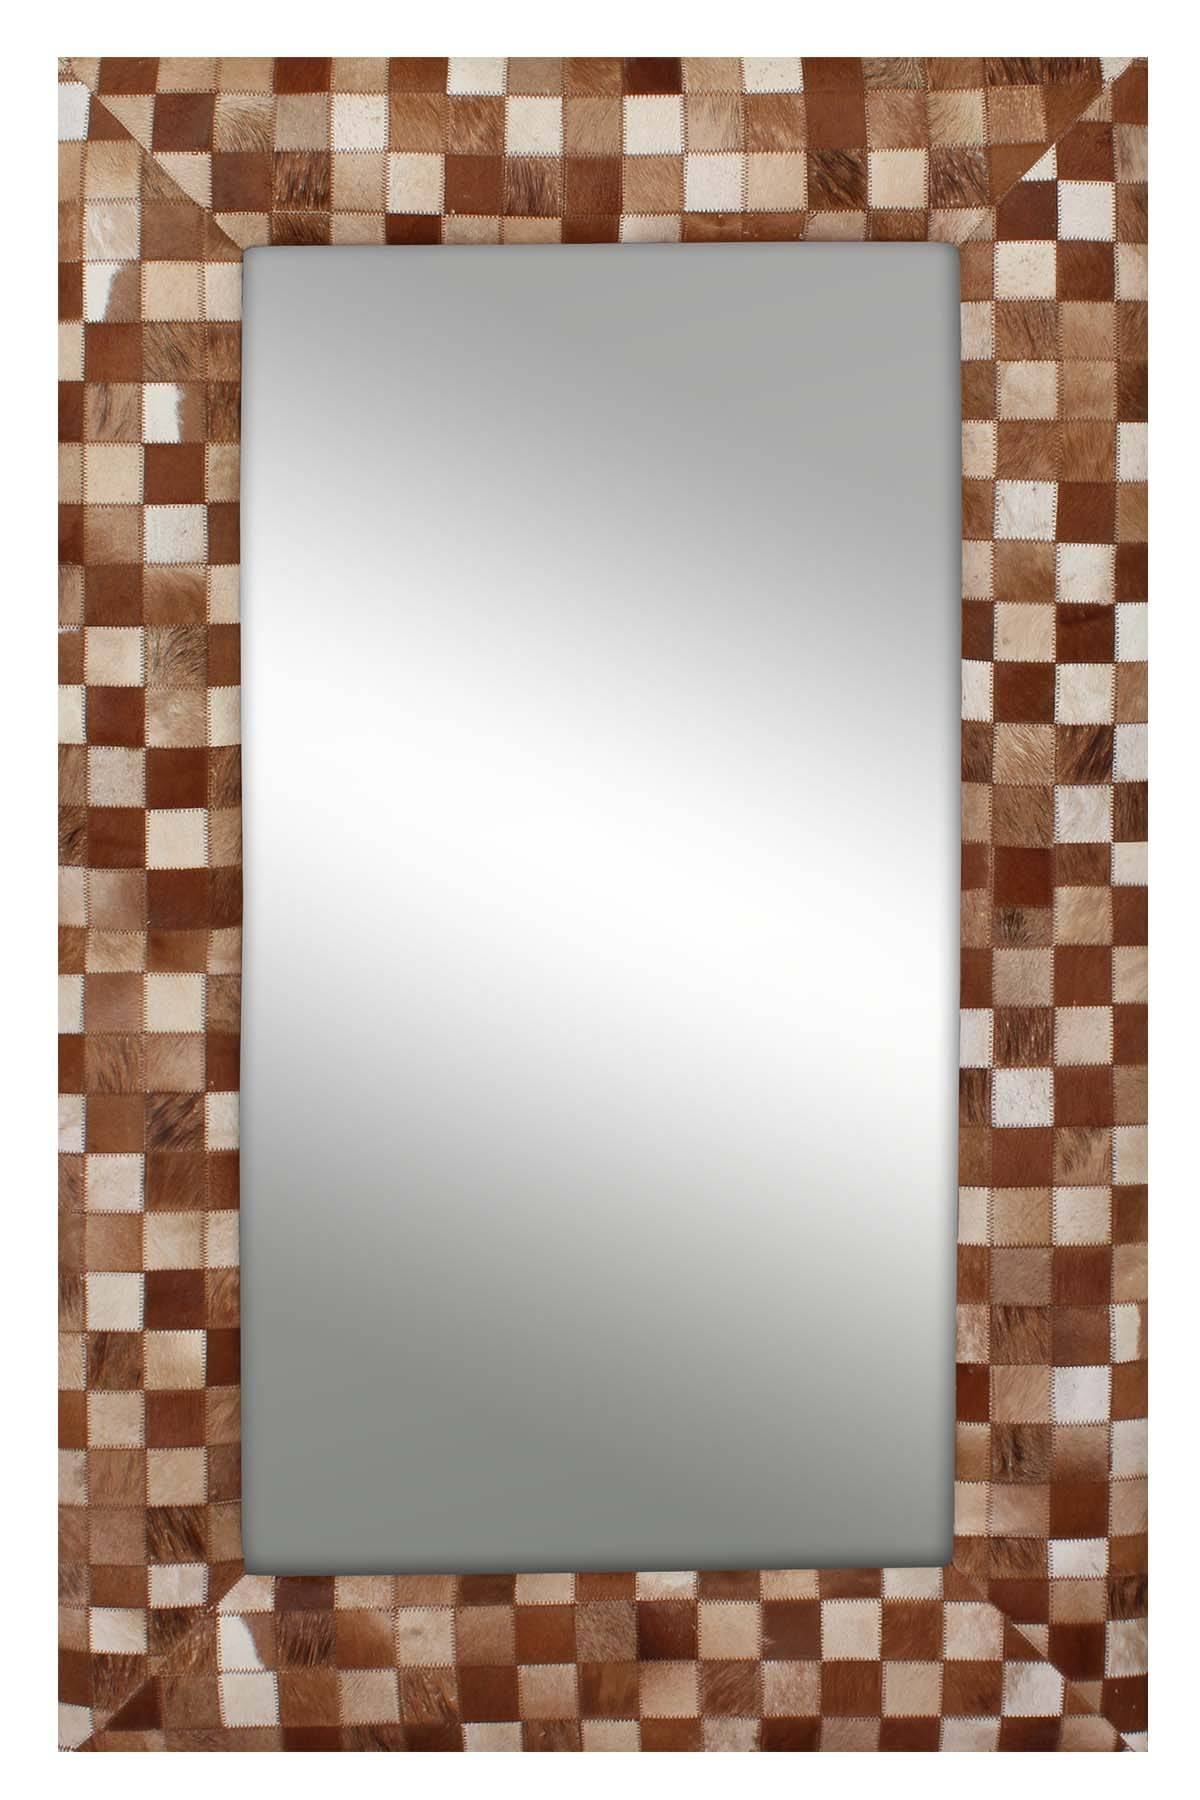 Buy Mirror Frame Online In India At Best Prices inside Leather Mirrors (Image 10 of 25)